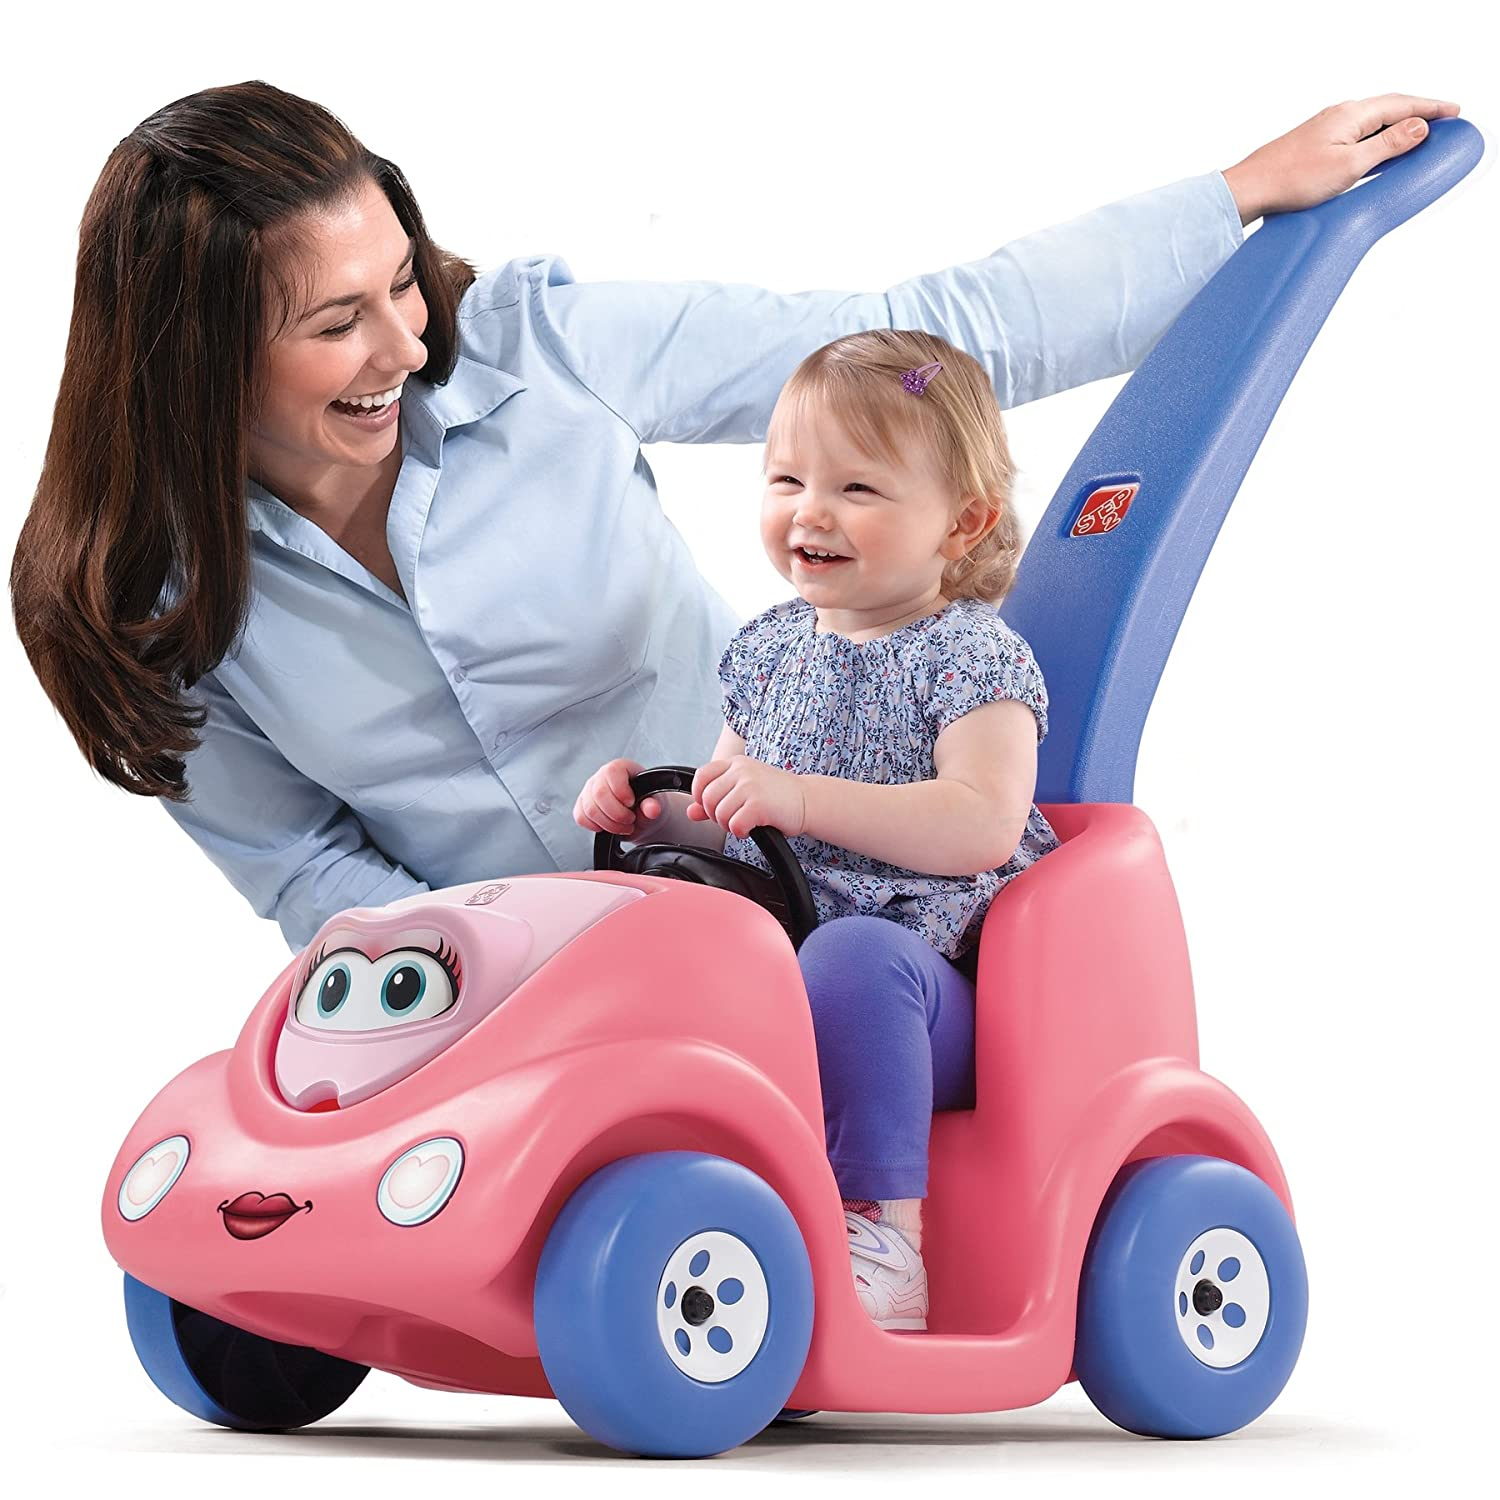 Top 9 Best Cars for 1 Year Olds You Can Consider 6